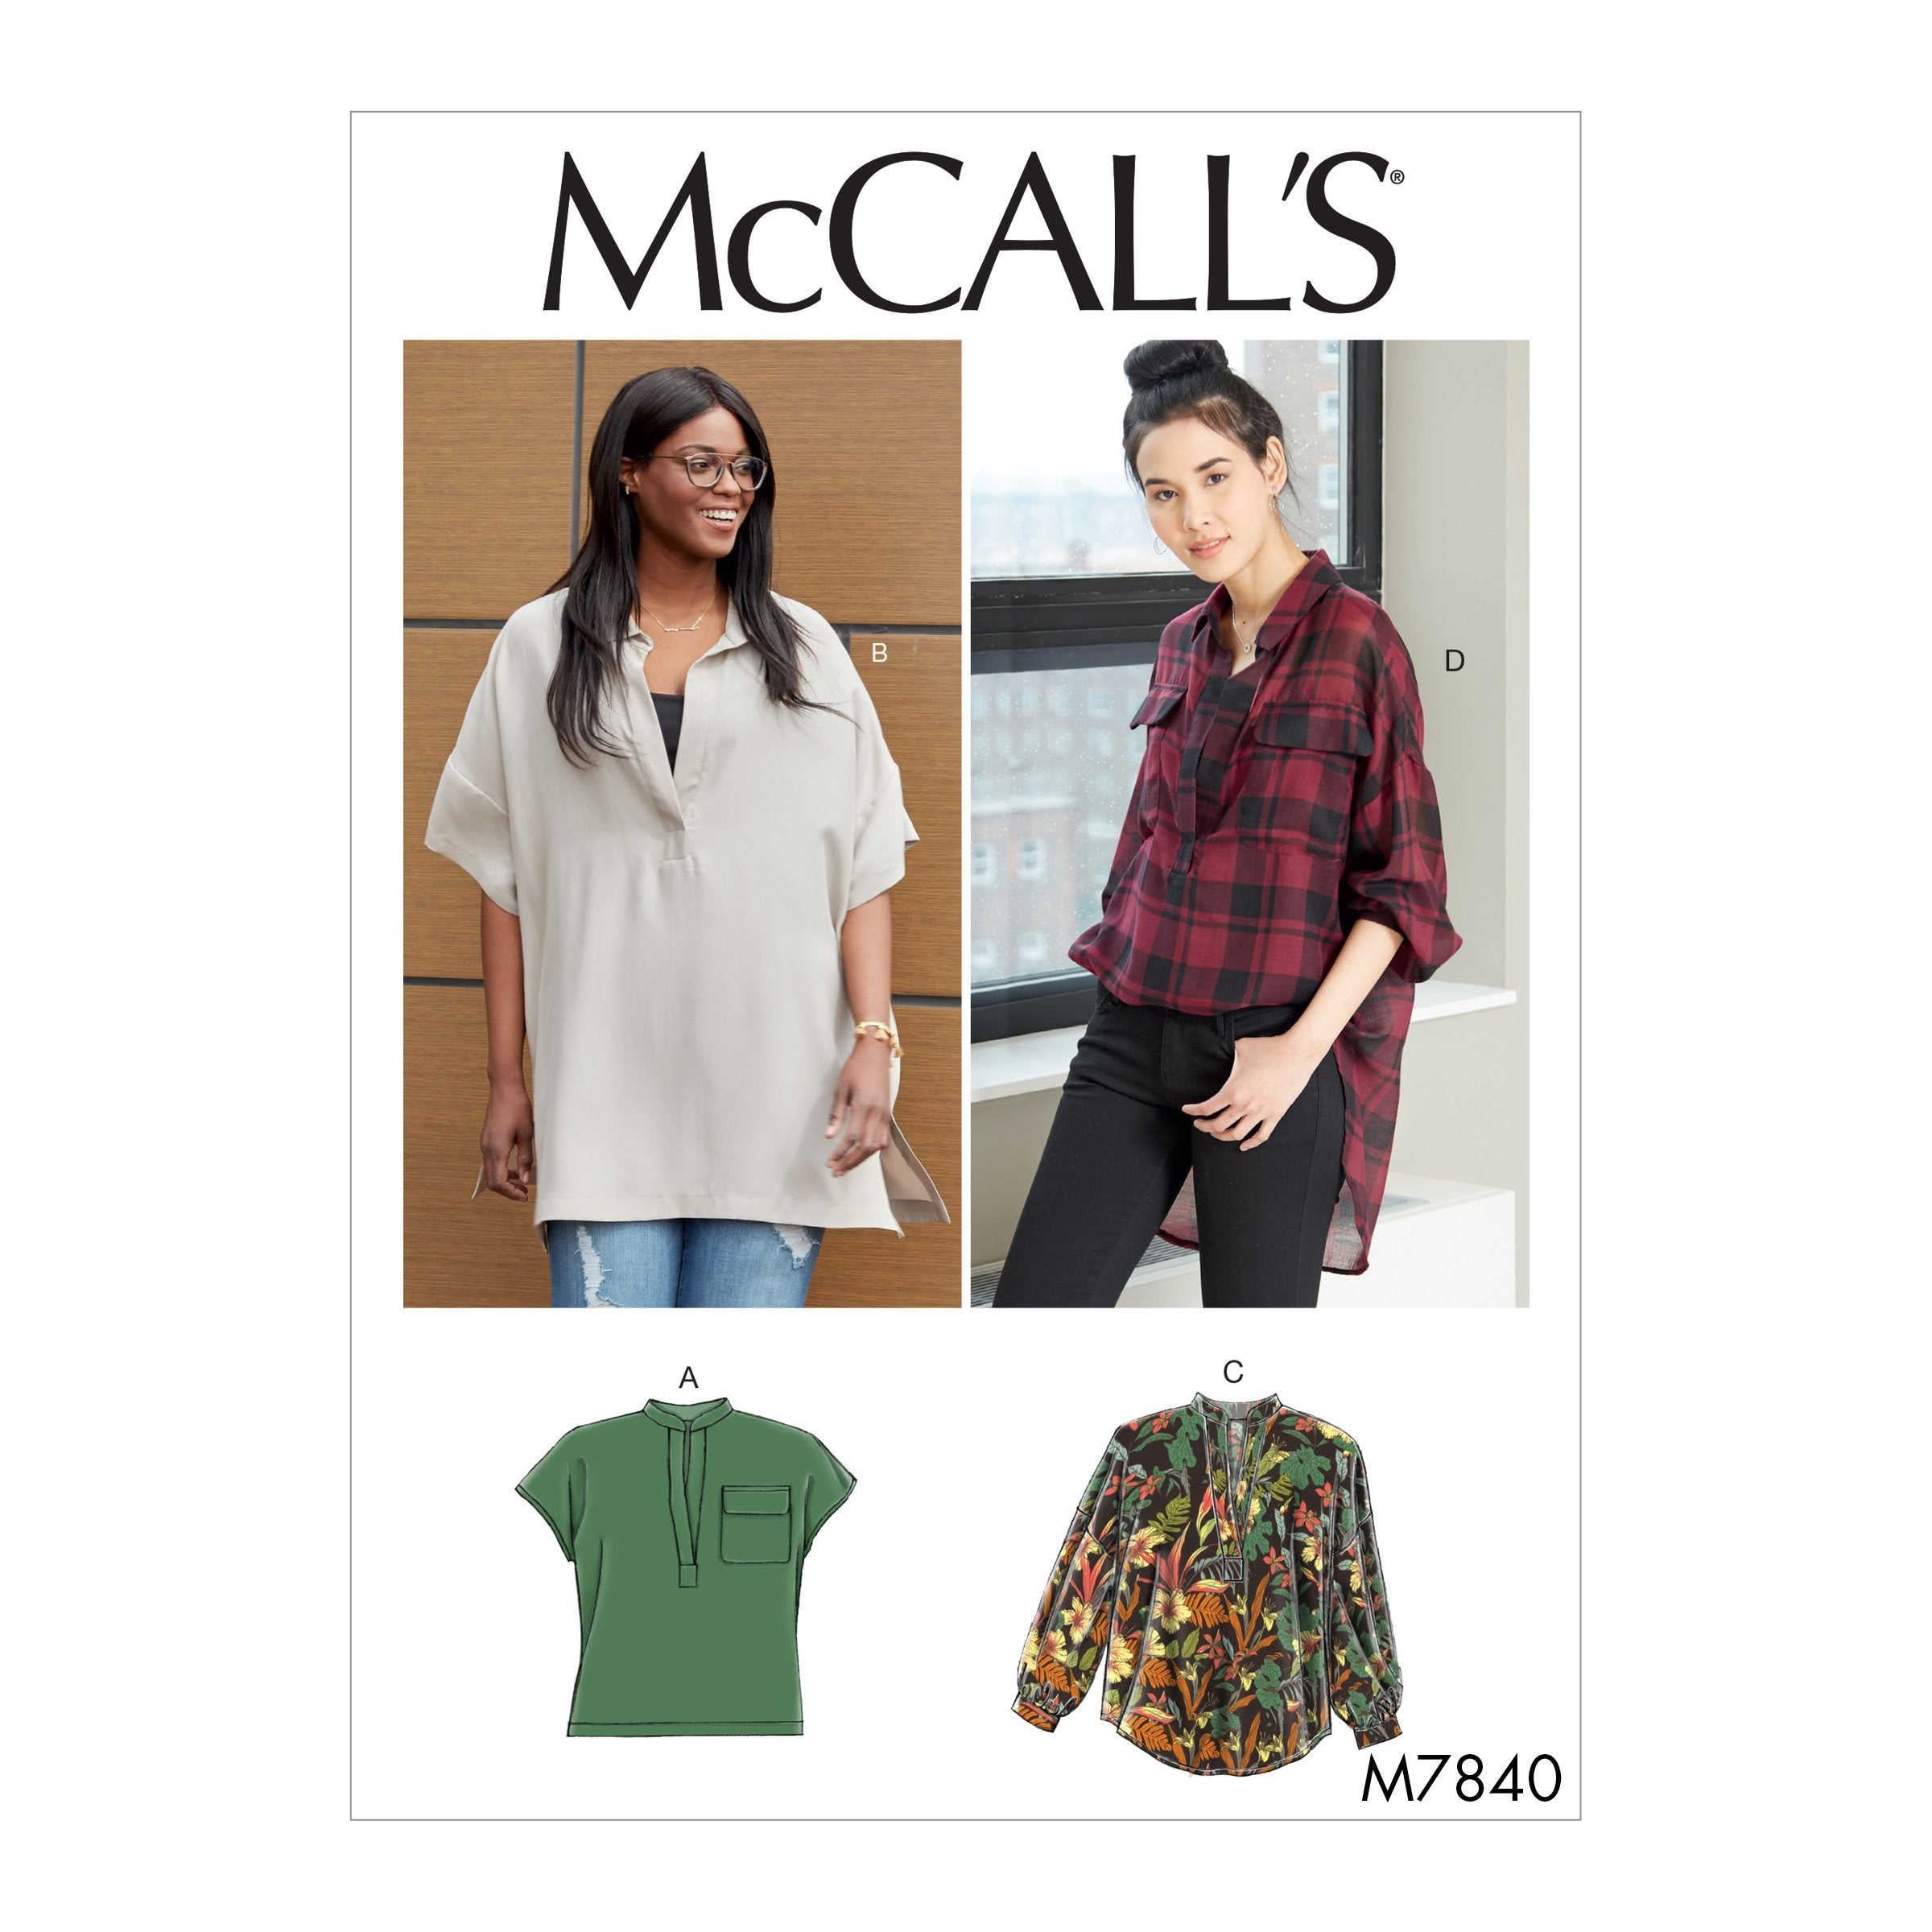 M7840 Misses'/Women's Tops Sewing Pattern